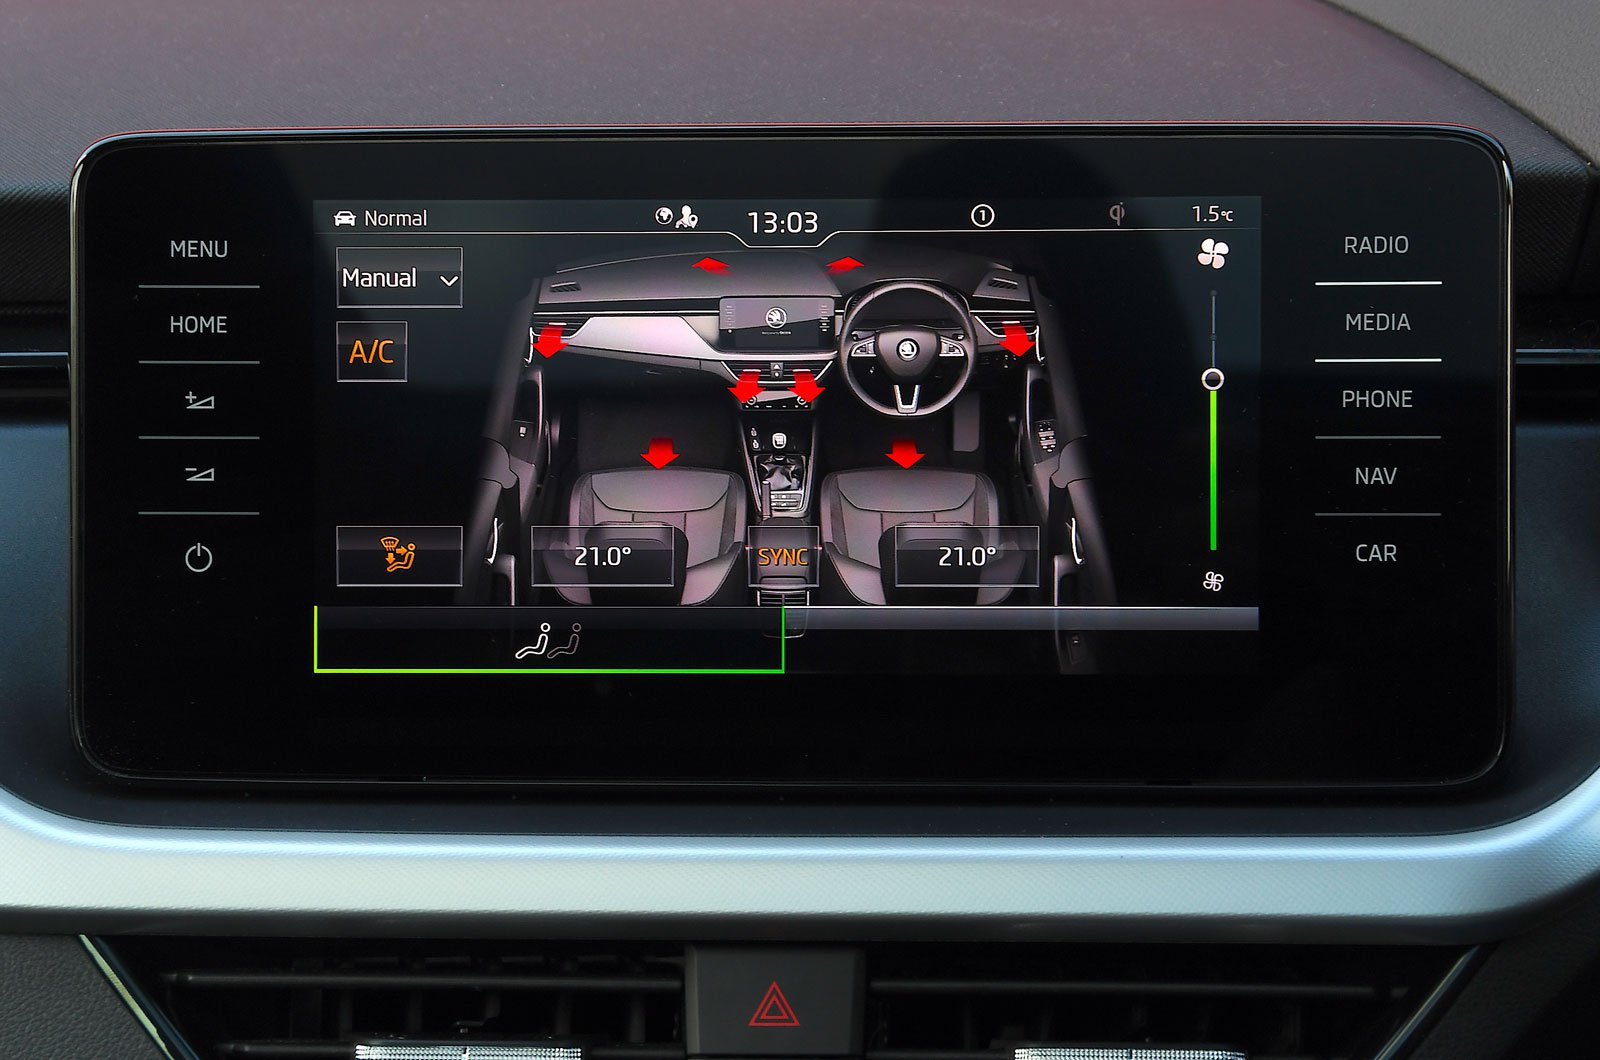 Skoda infotainment screen